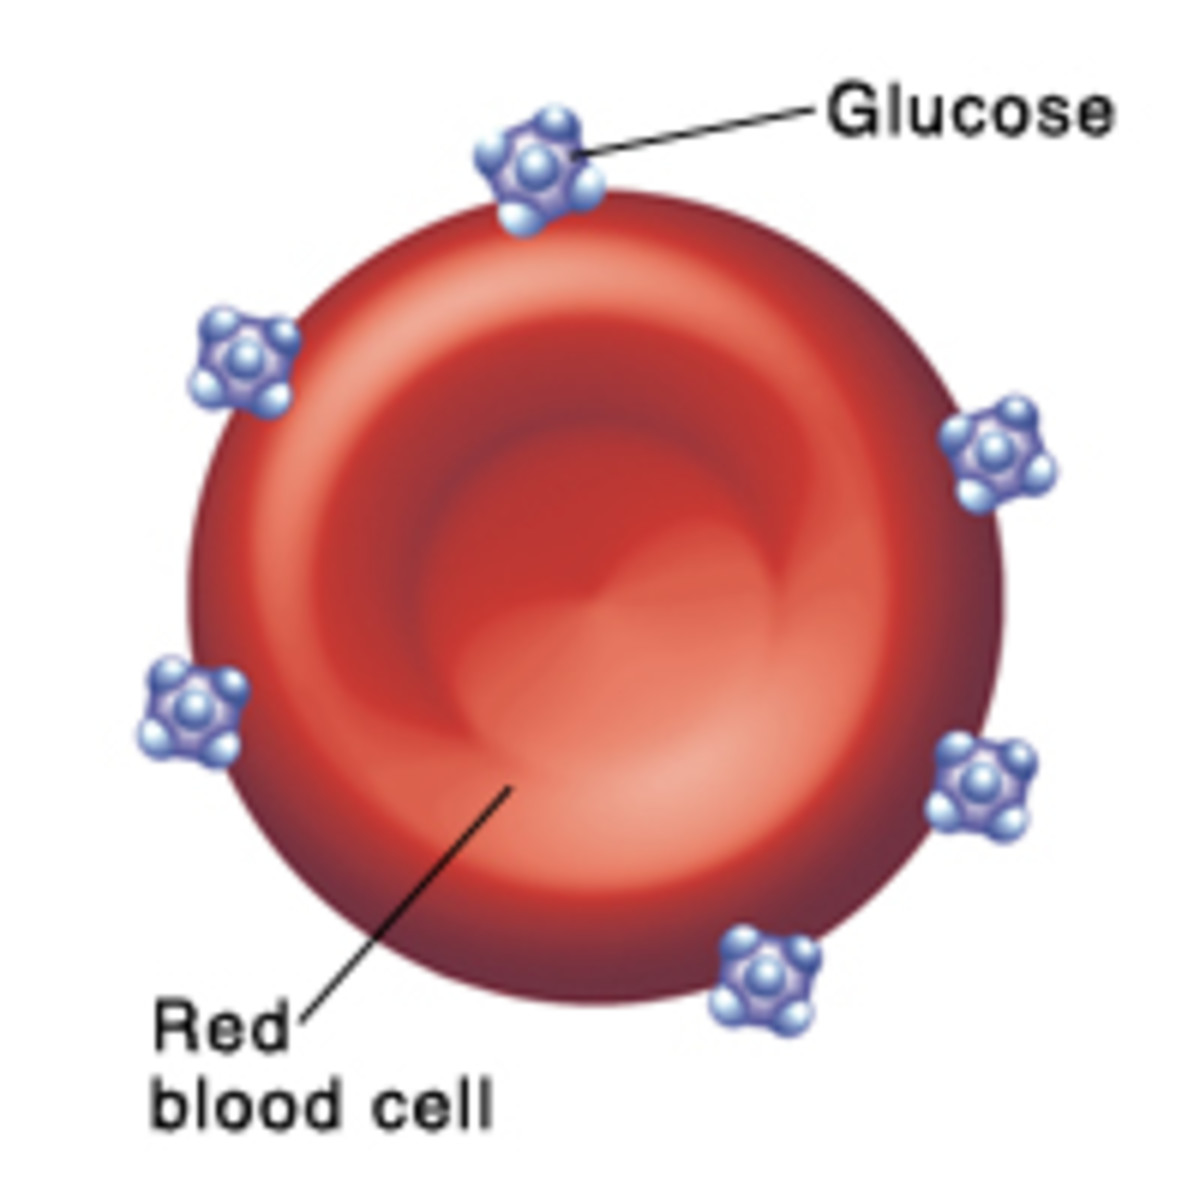 Non-diabetics red blood cells have some glucose molecules attached to it.